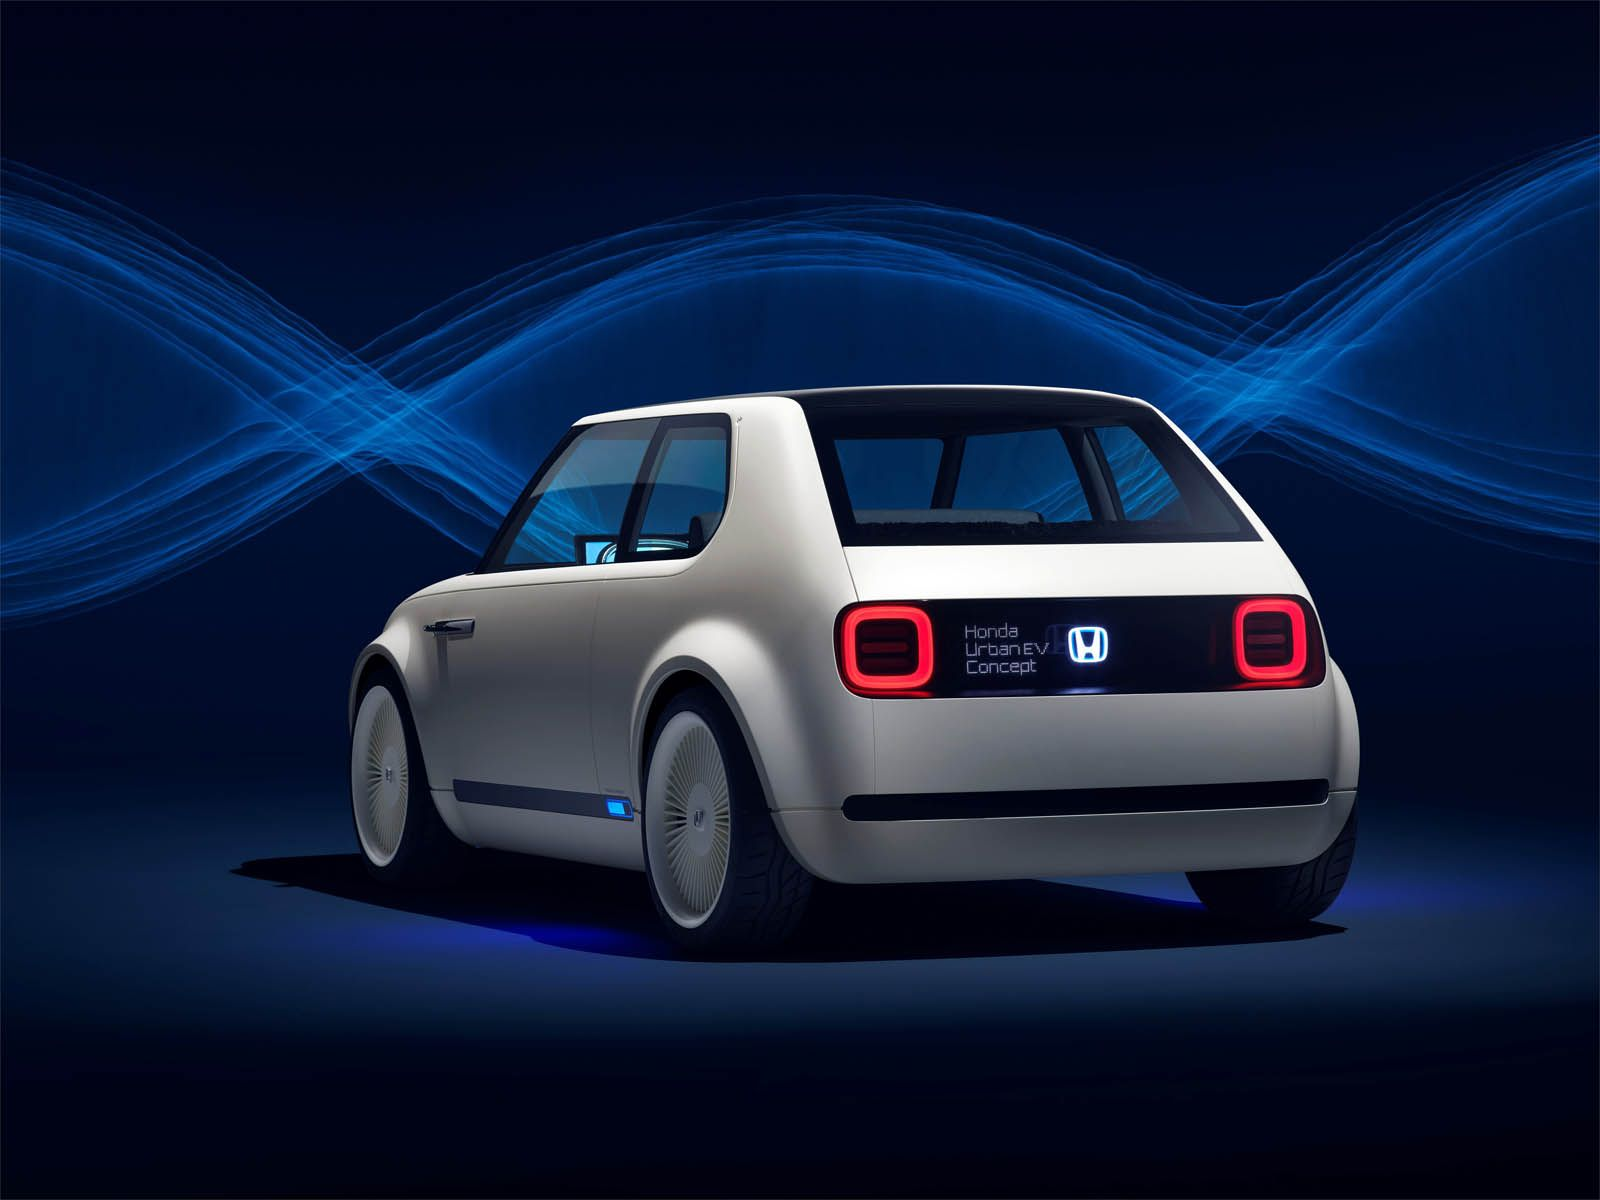 Honda S Urban Ev Concept Borrows From The Past Looks To The Future Carscoops Honda Concept Cars Car